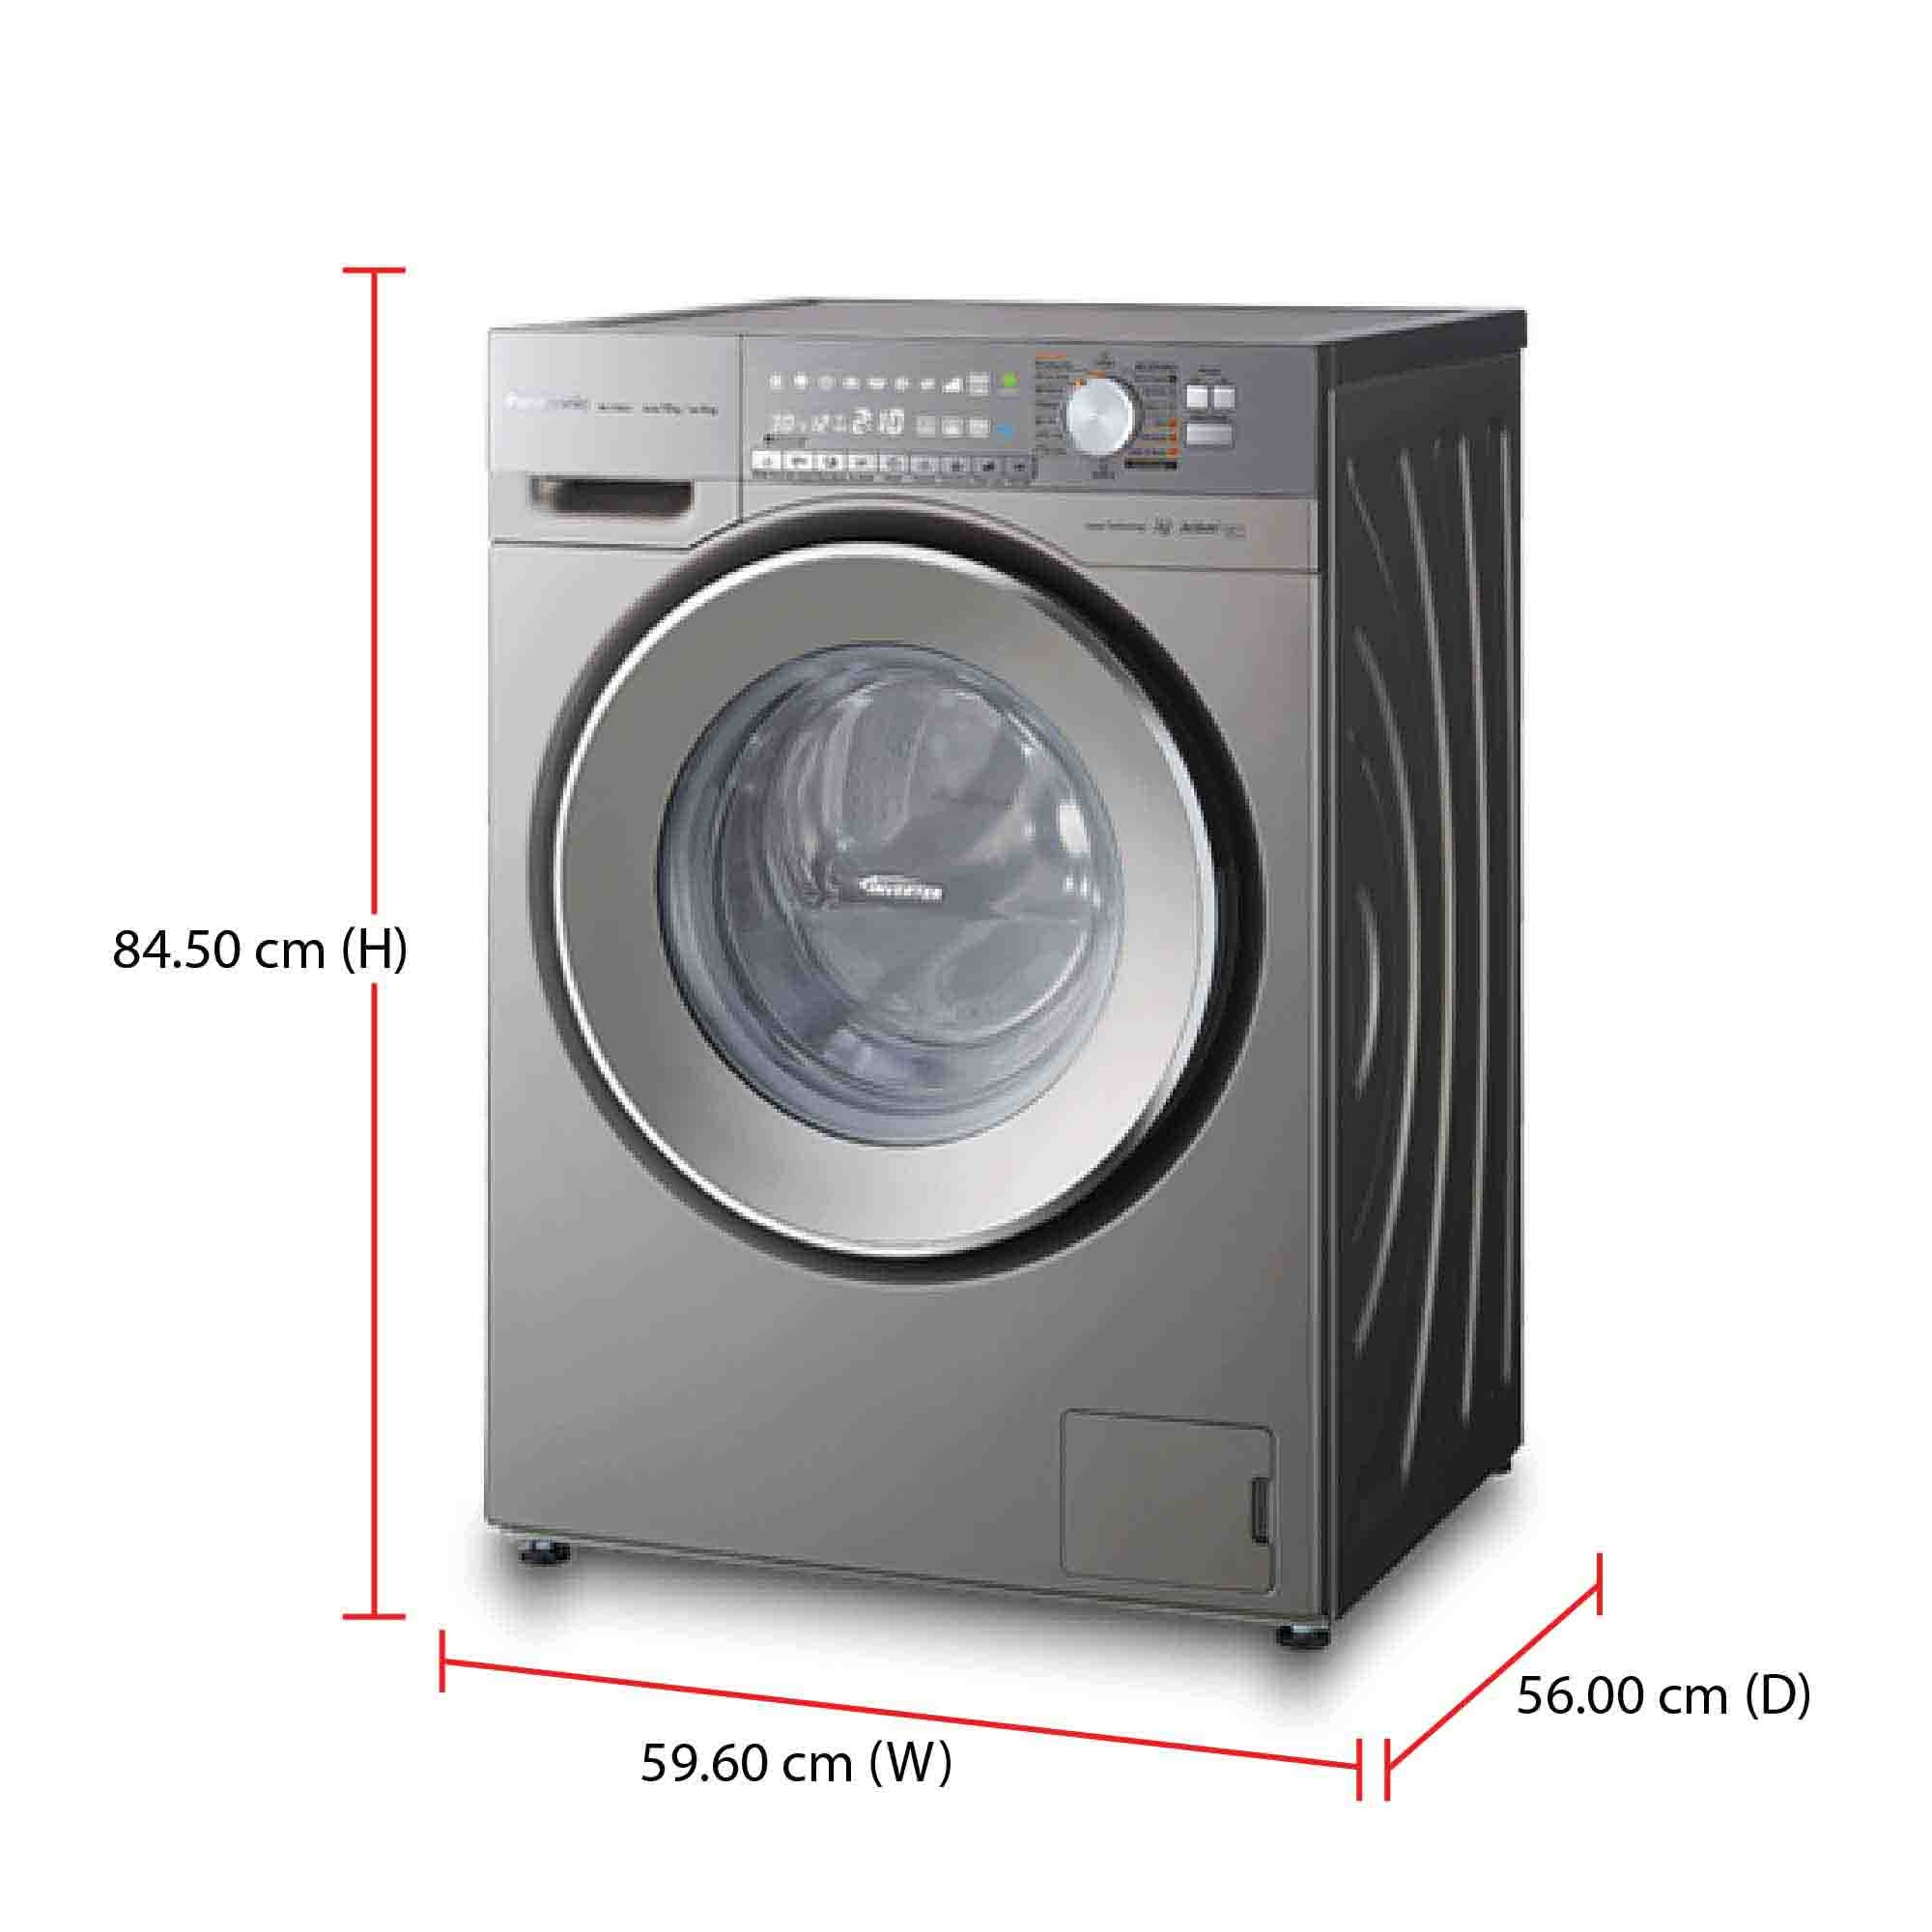 Panasonic Washer And Dryer Free Download Washing Machine Wiring Diagram Images Gallery